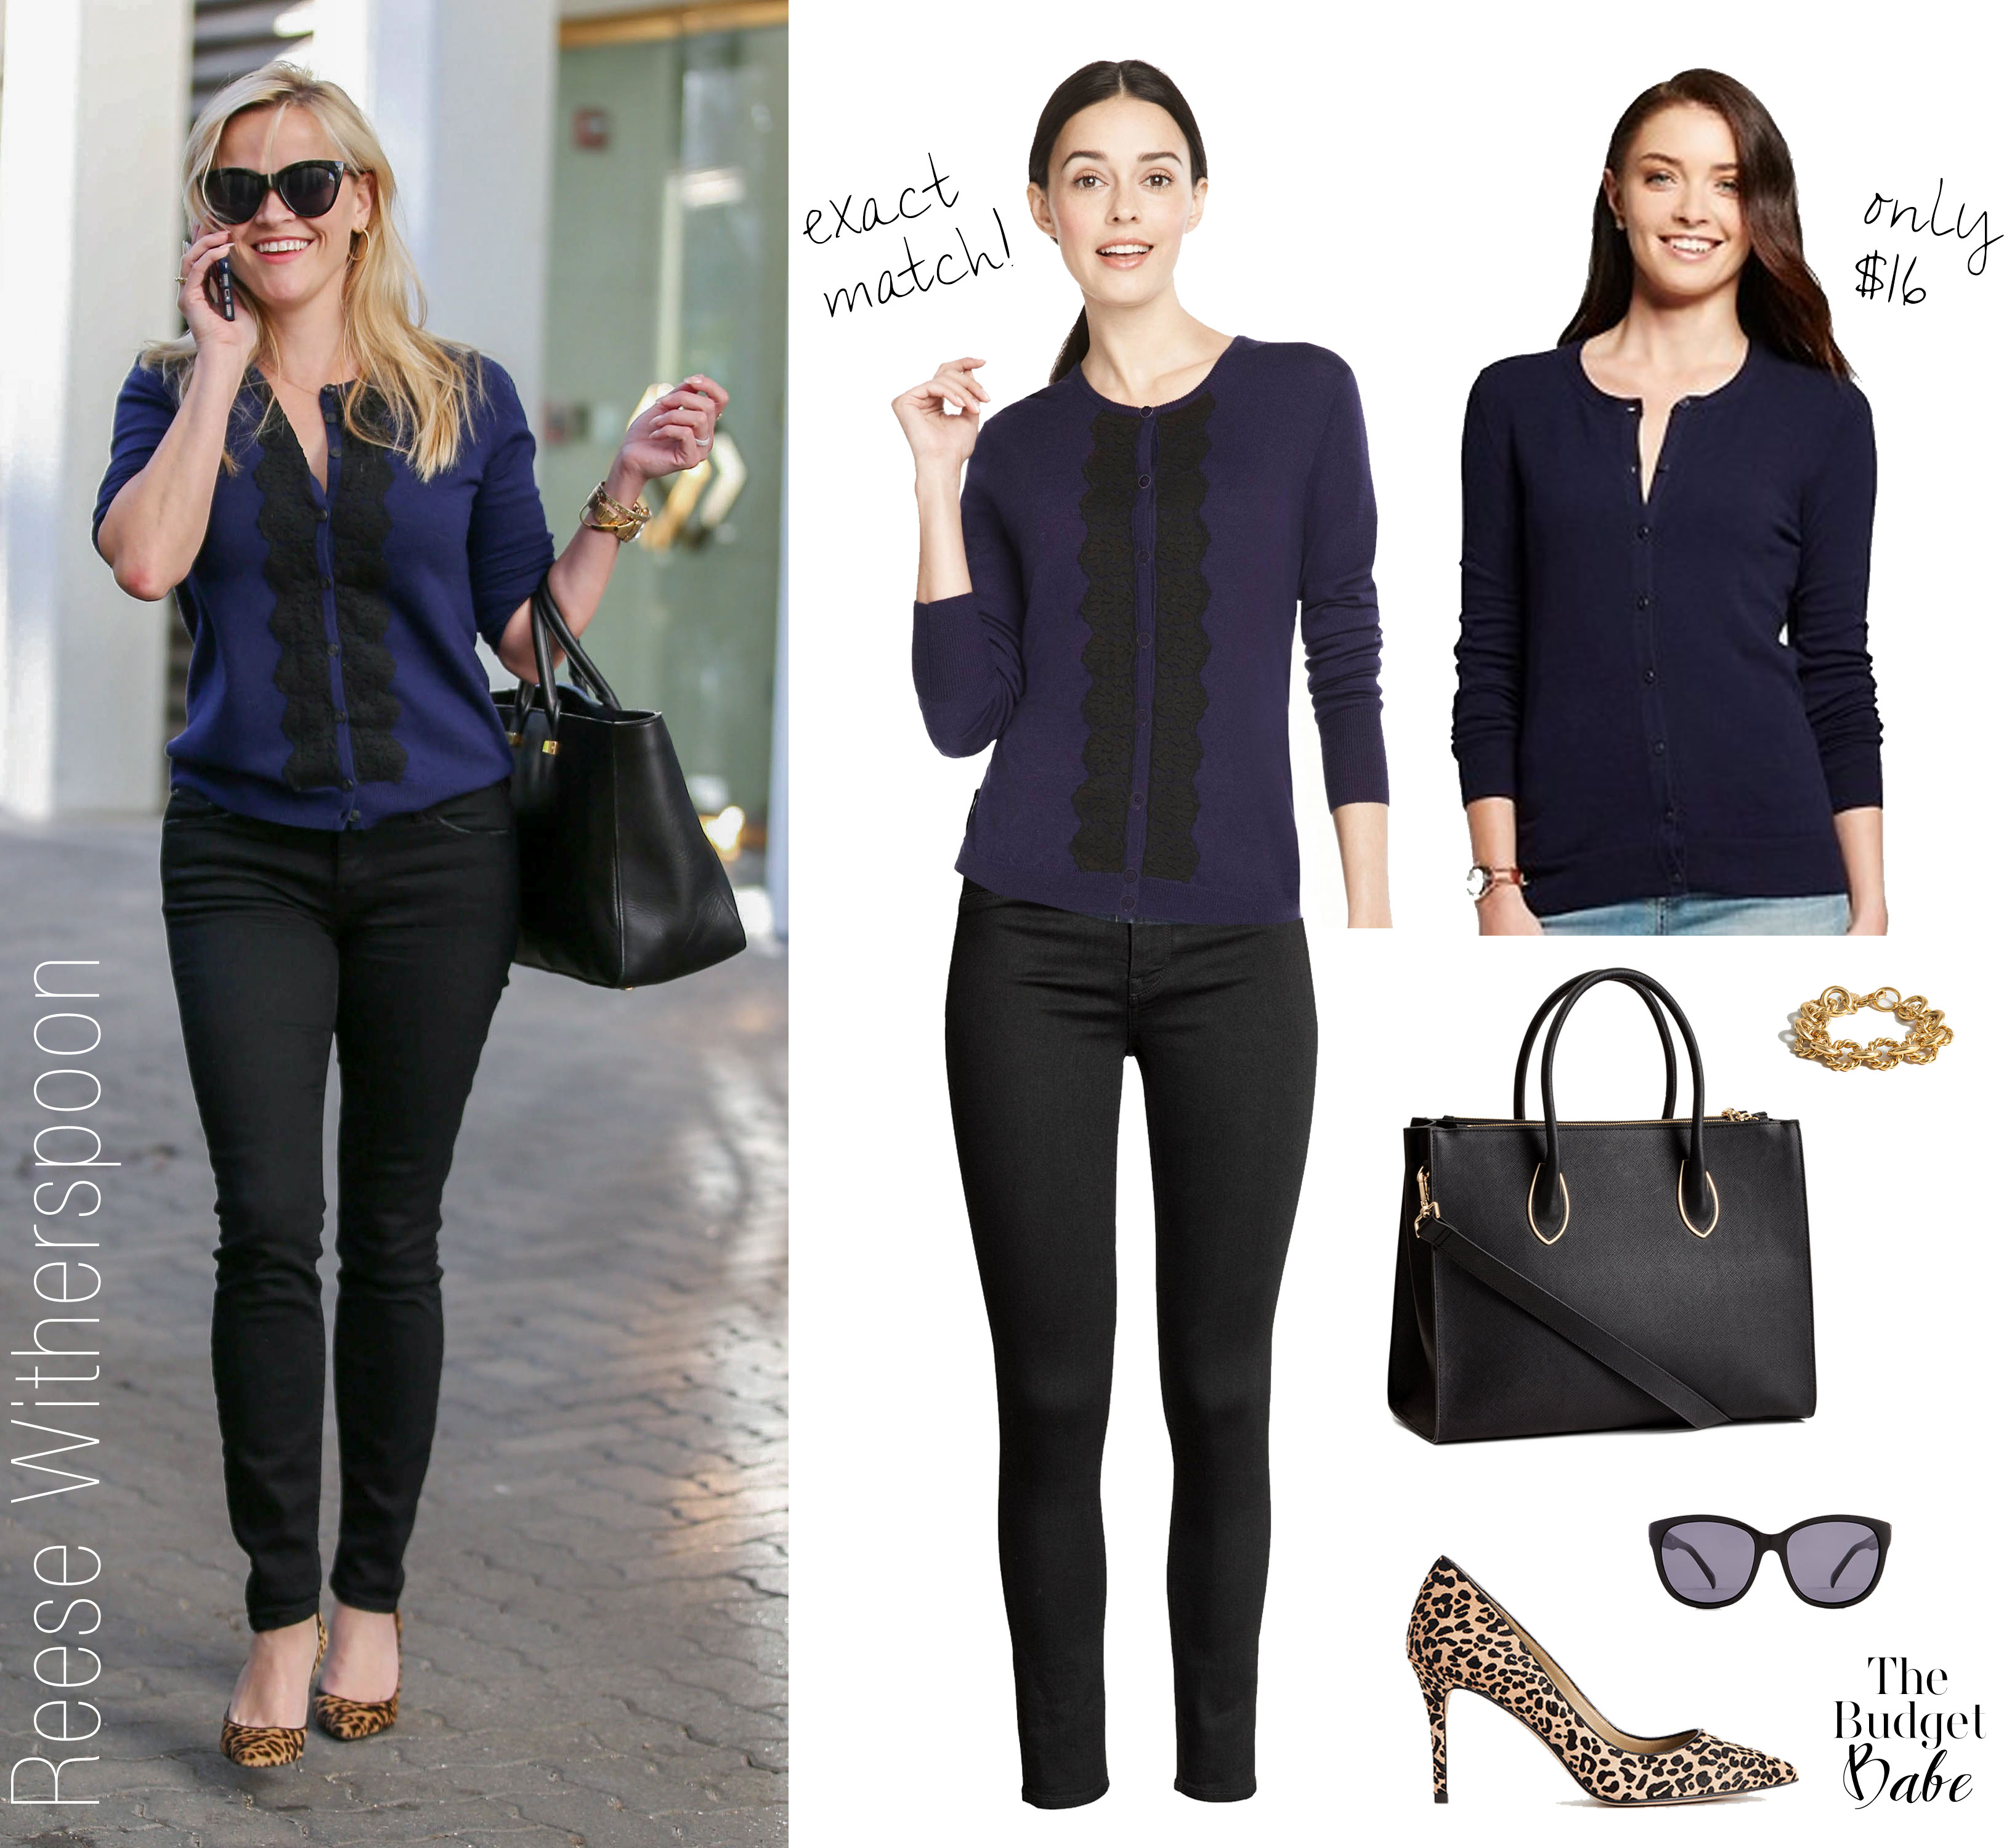 Reese Witherspoon looks chic in a lace front cardigan from her Draper James line.